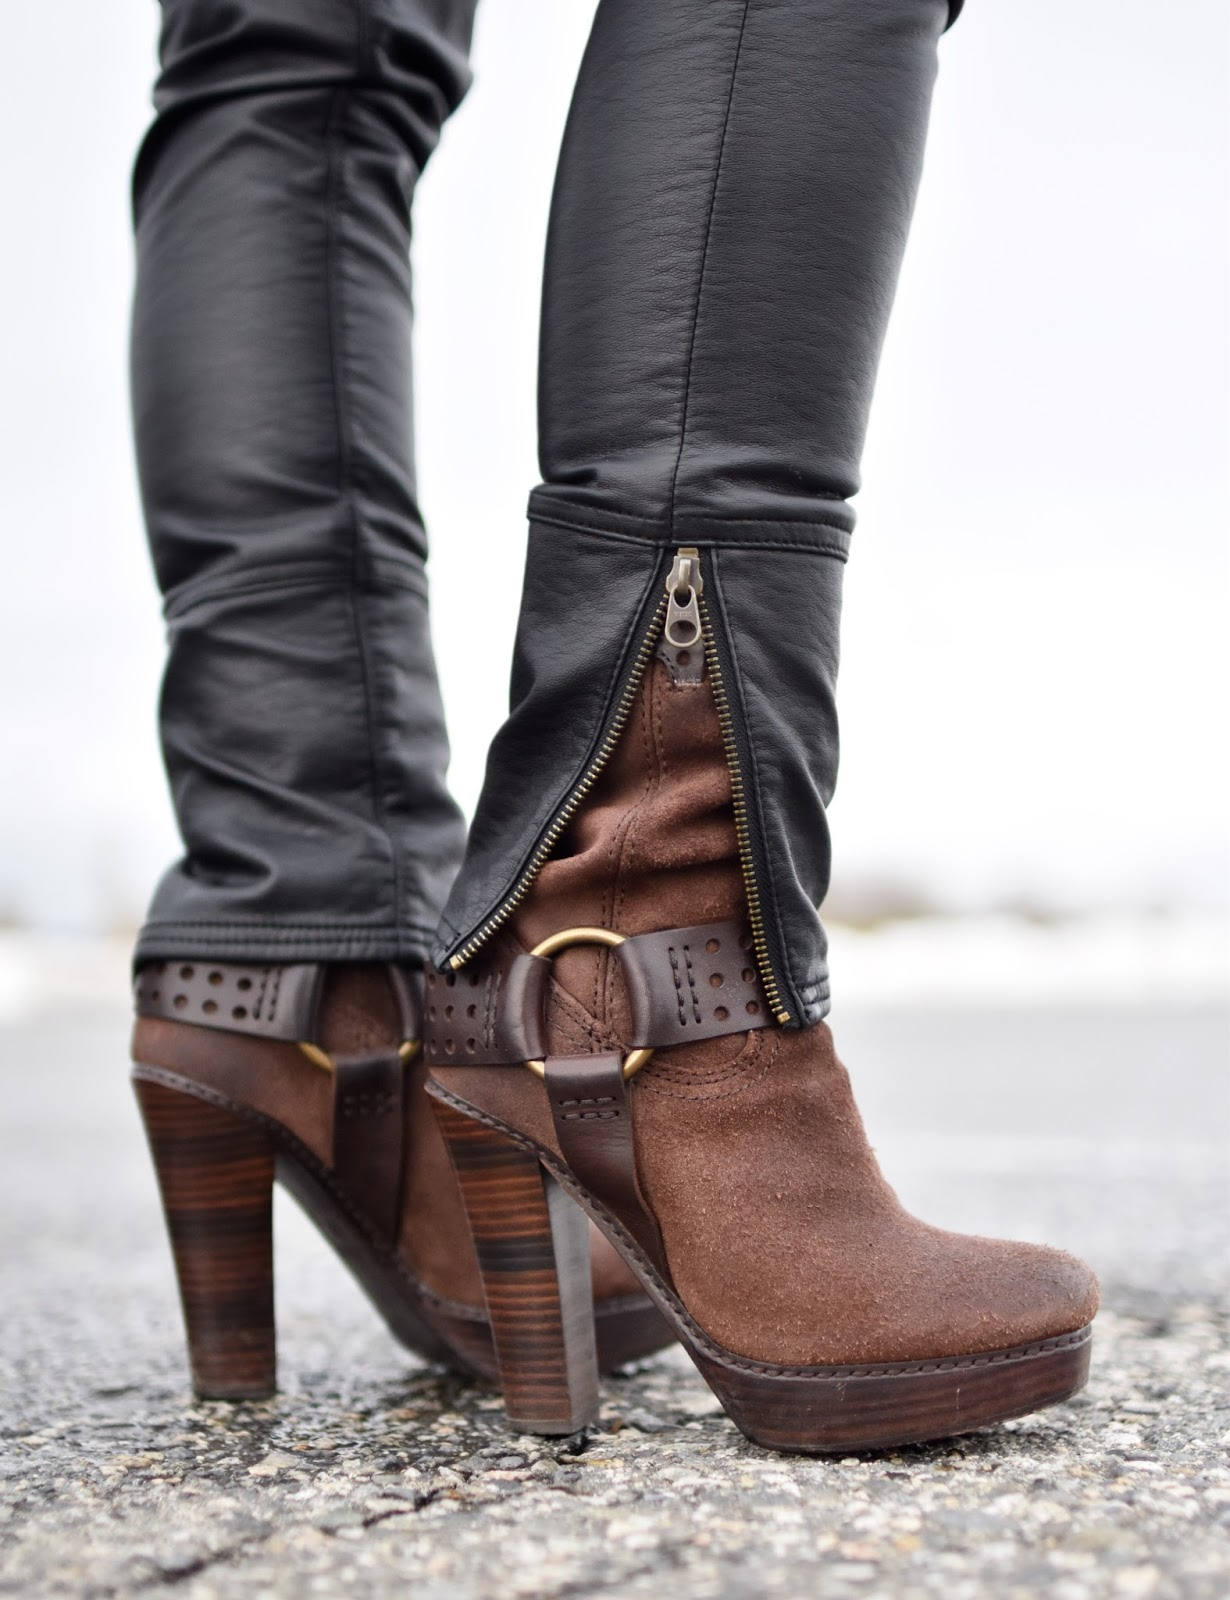 Monika Faulkner outfit inspiration - vegan leather jeans, Frye harness boots